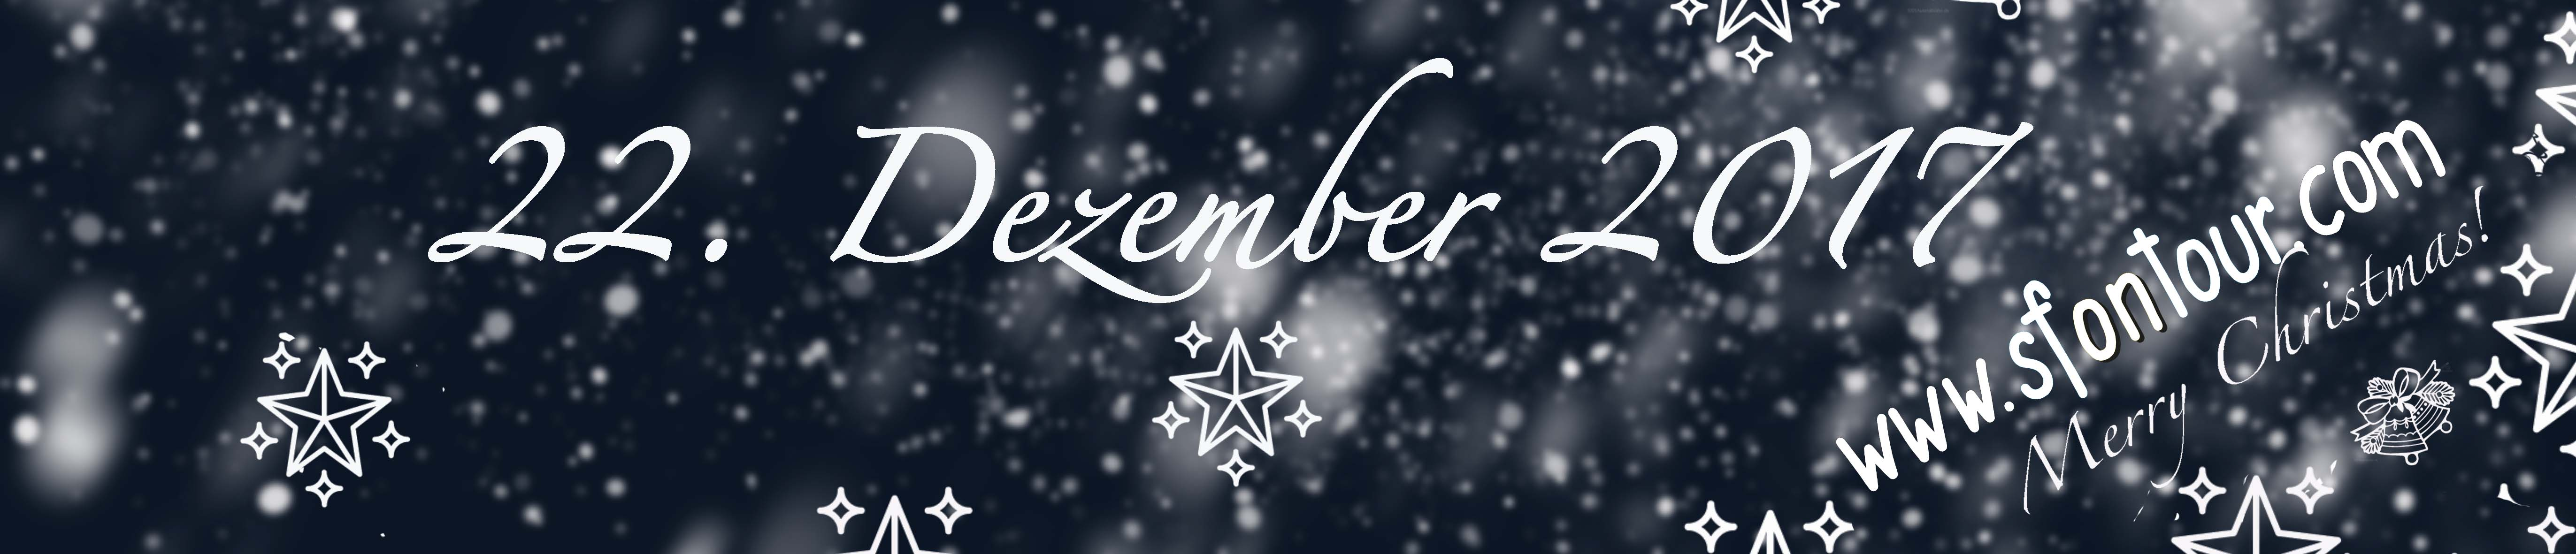 AdventCalendarBanner22D